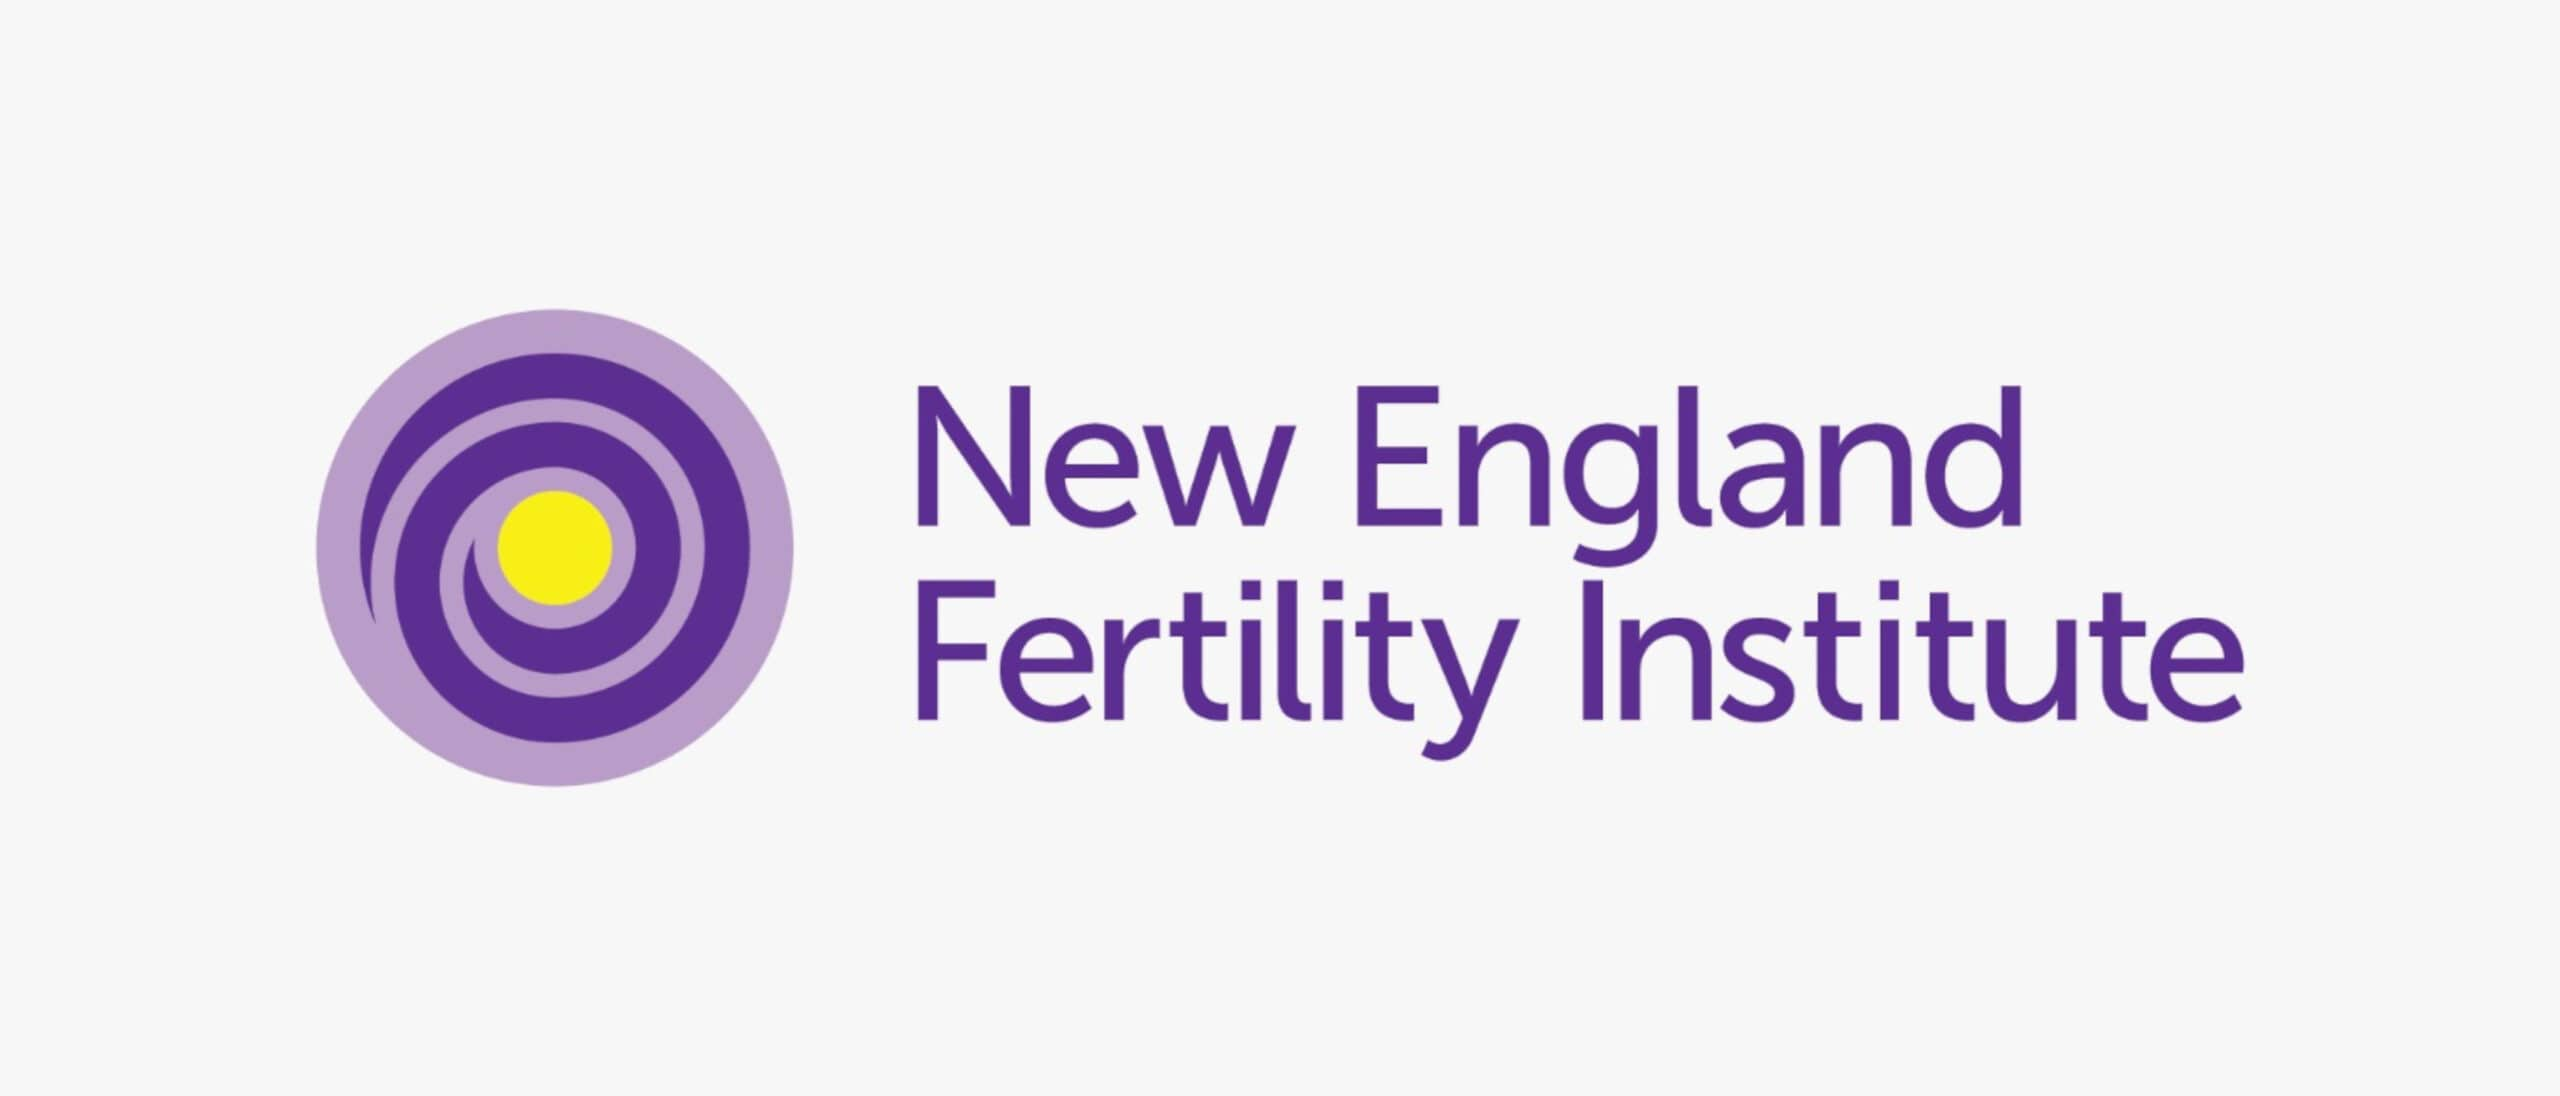 New England Fertility Institute - We make families